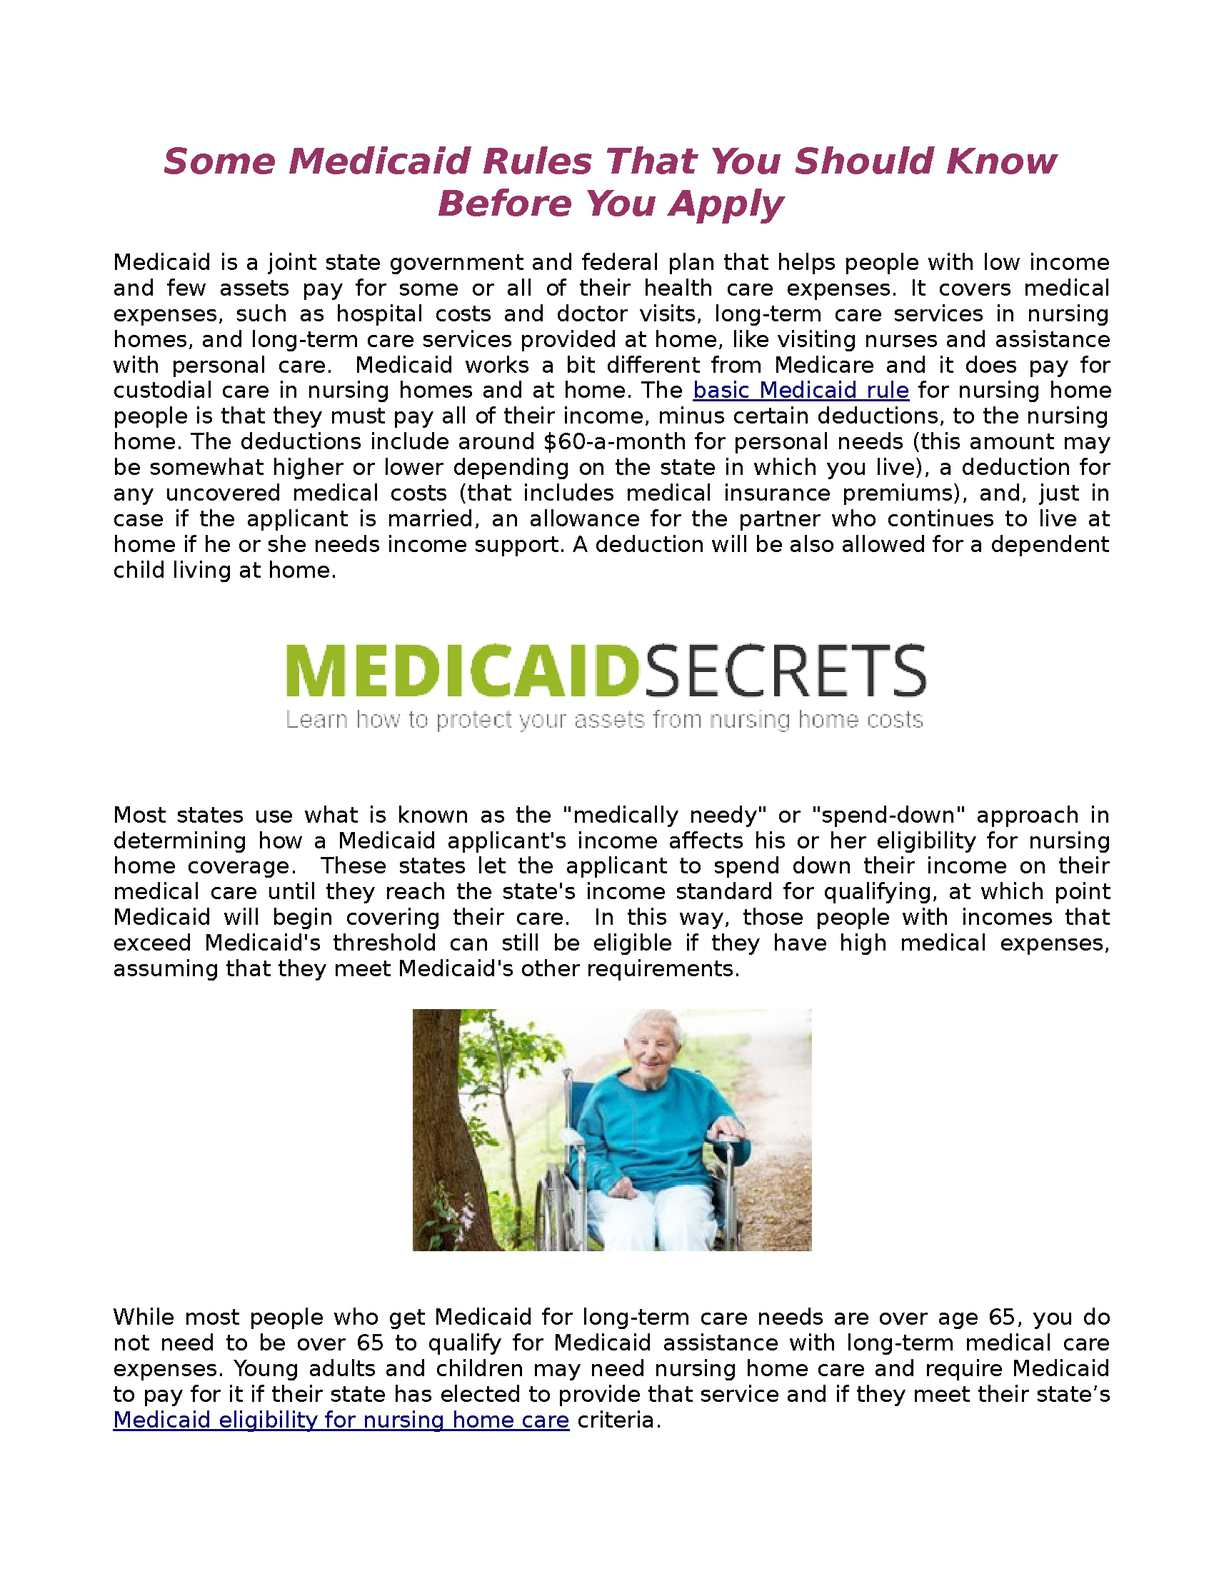 Calaméo - Some Medicaid Rules That You Should Know Before You Apply